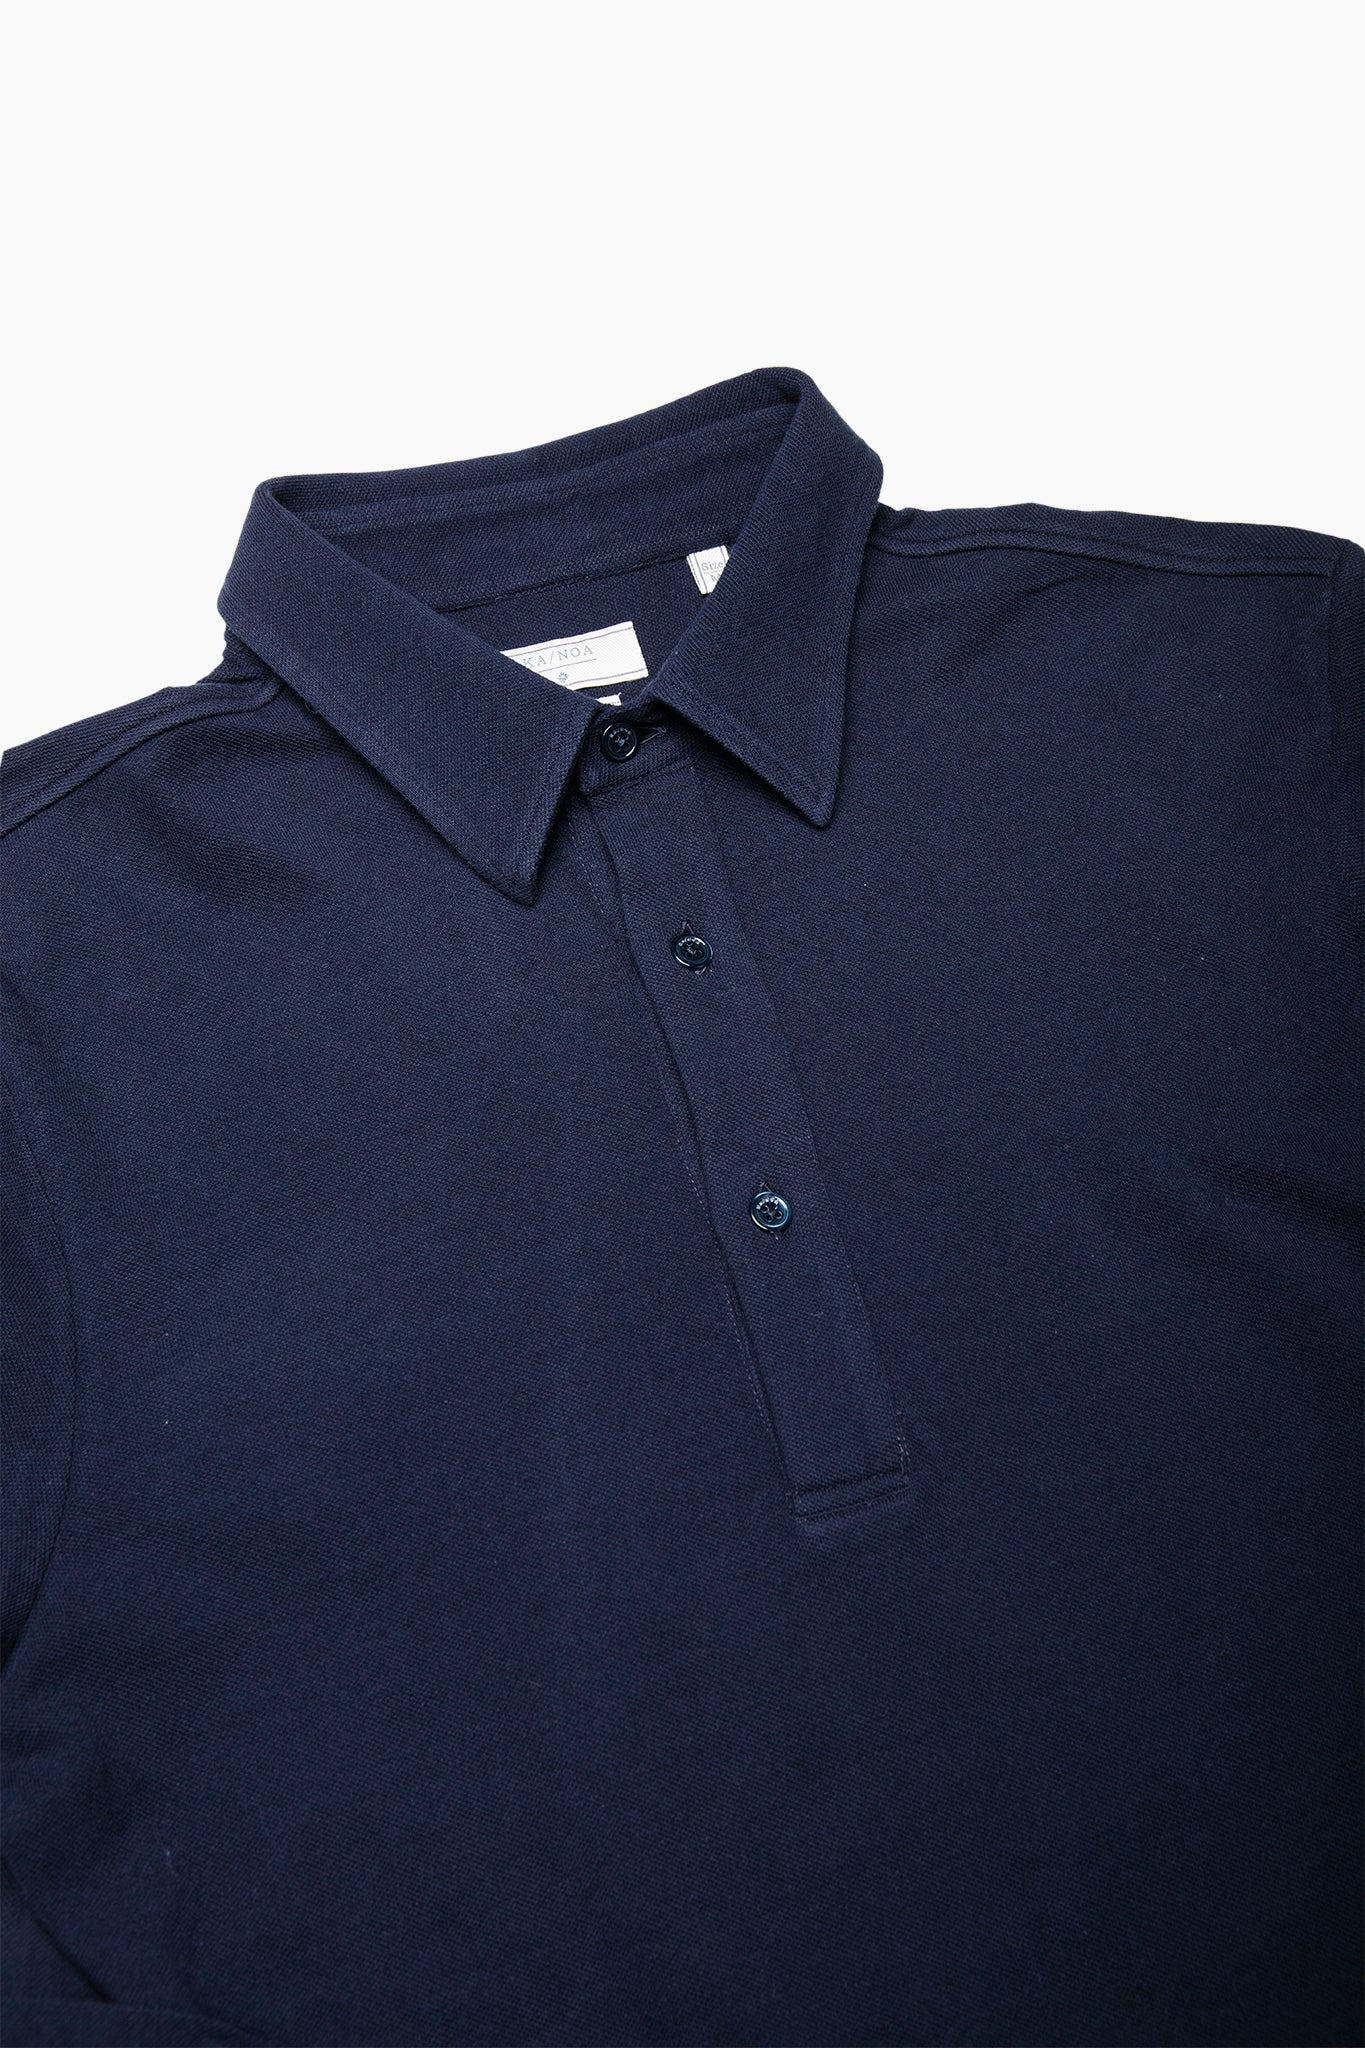 Jean long-sleeved polo in compact fine piquet (dark blue)